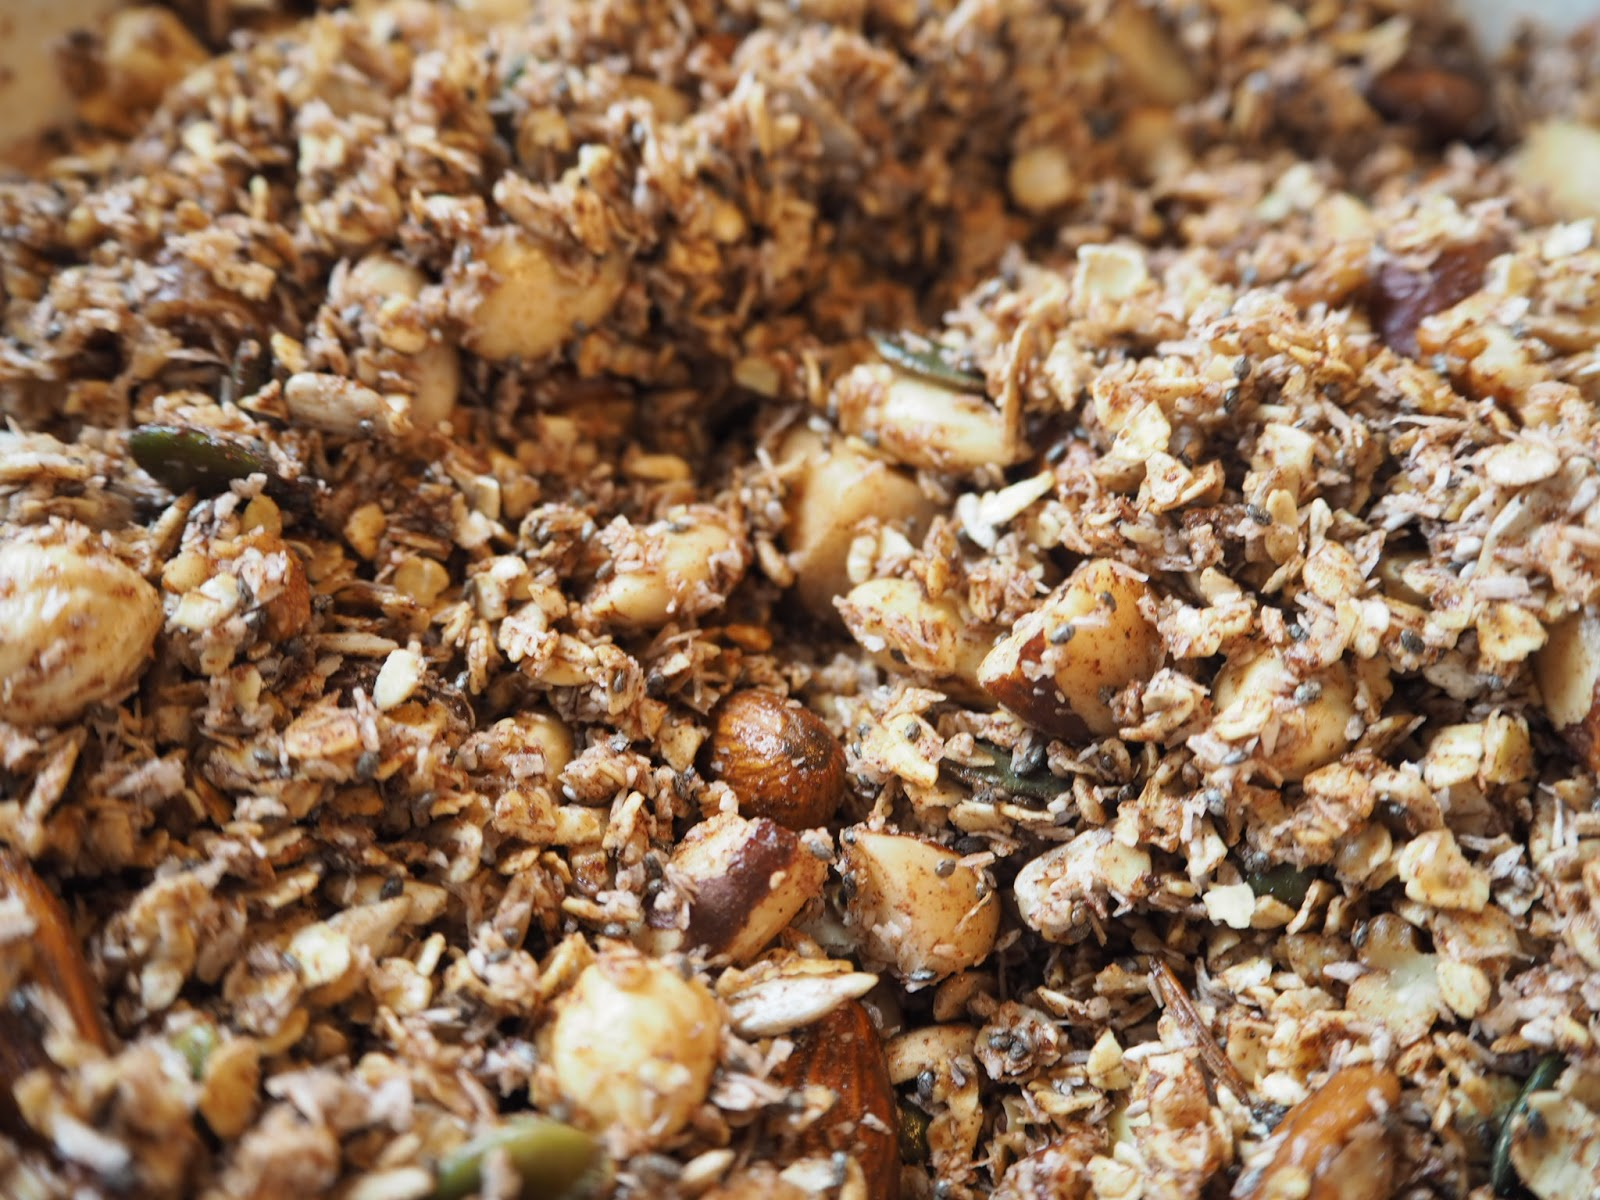 Cinnamon and Coconut Granola